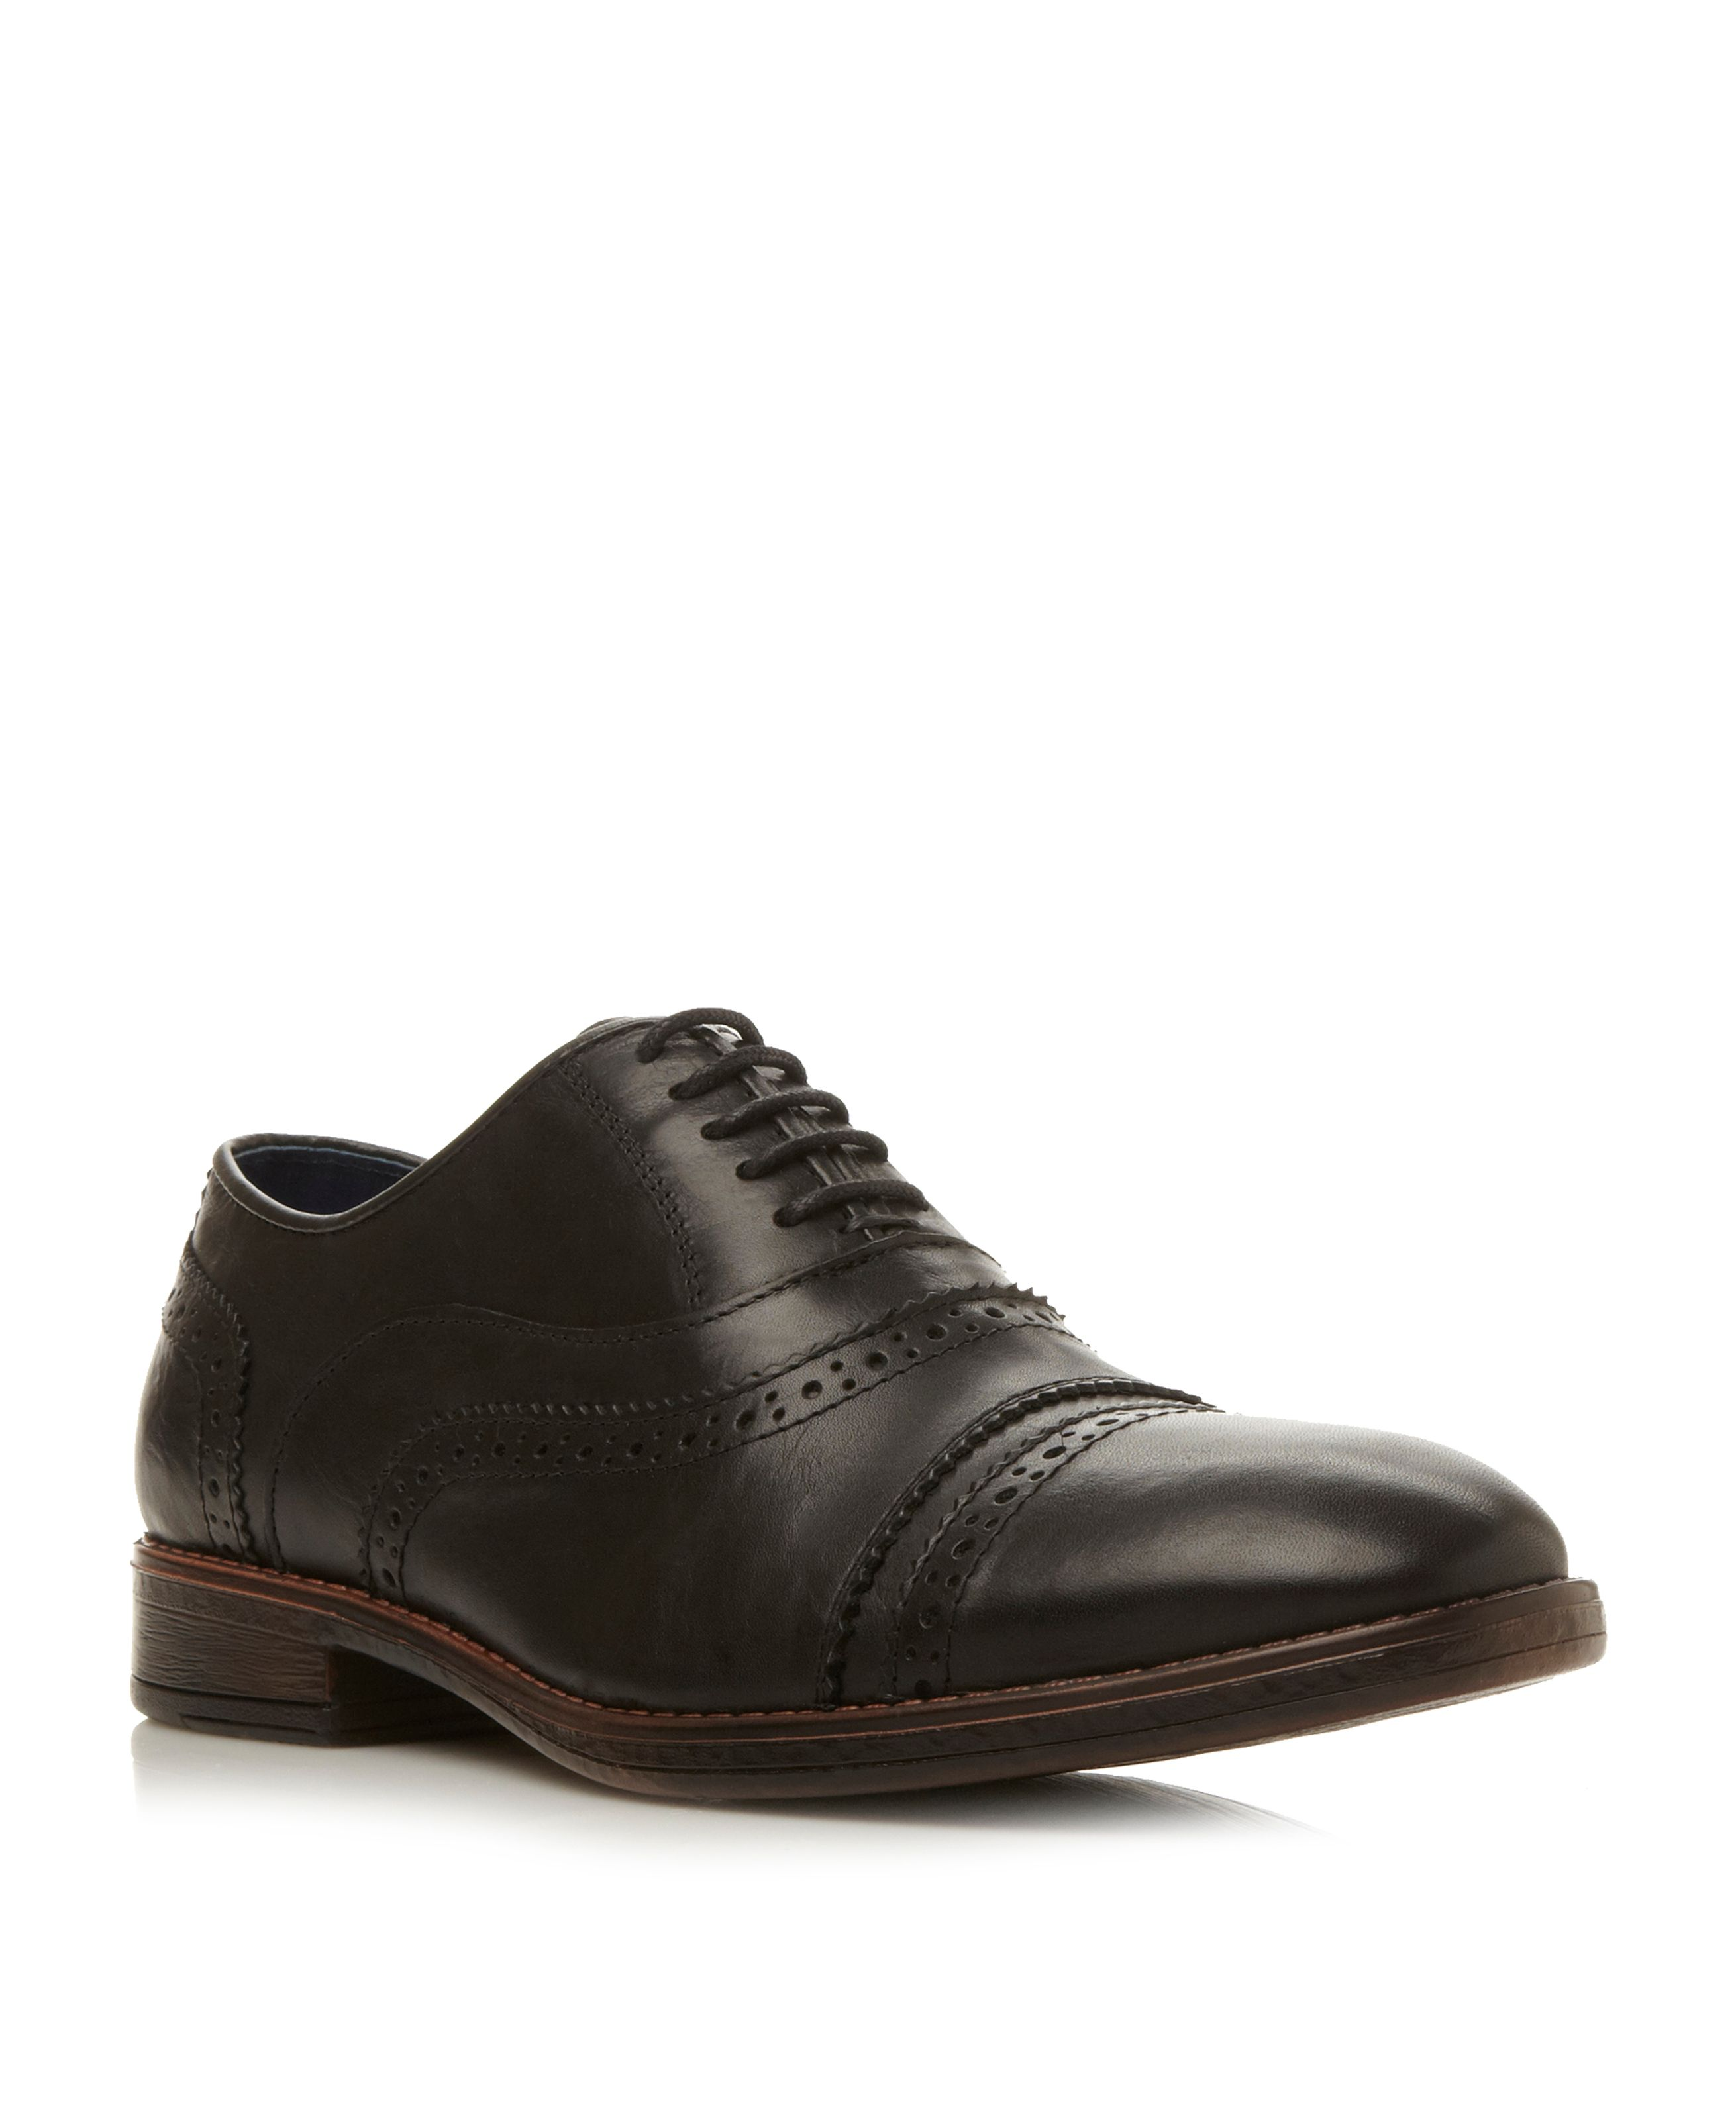 Bosworth vintage style lace up shoes